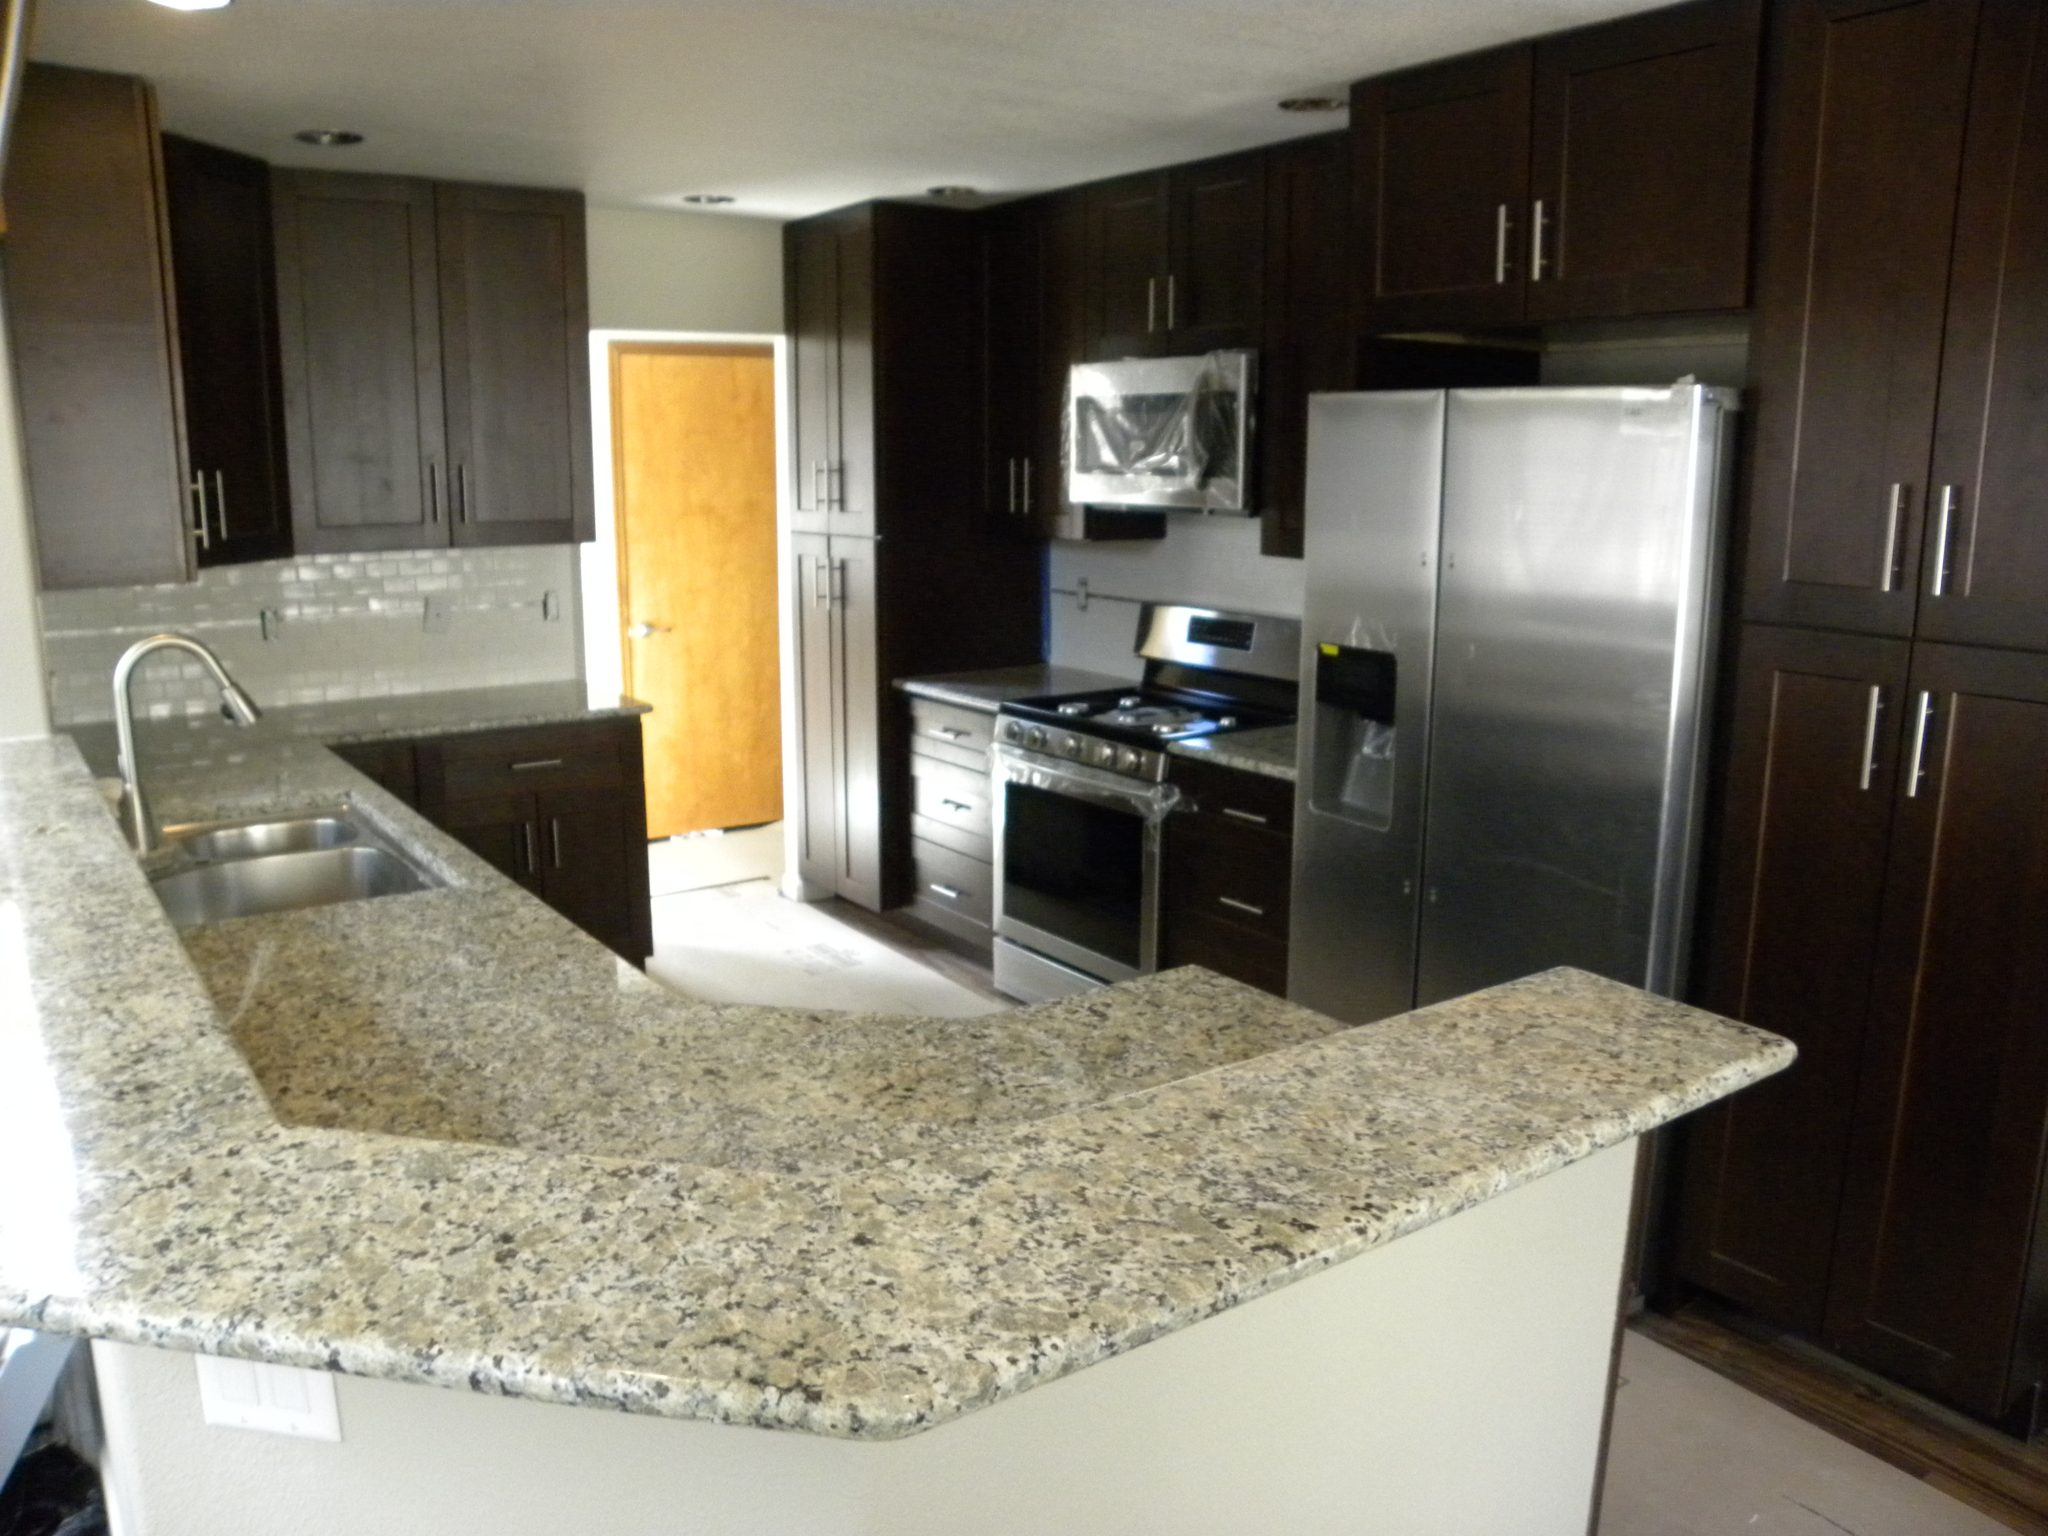 Newly remodeled kitchen with granite countertops and wooden cabinets